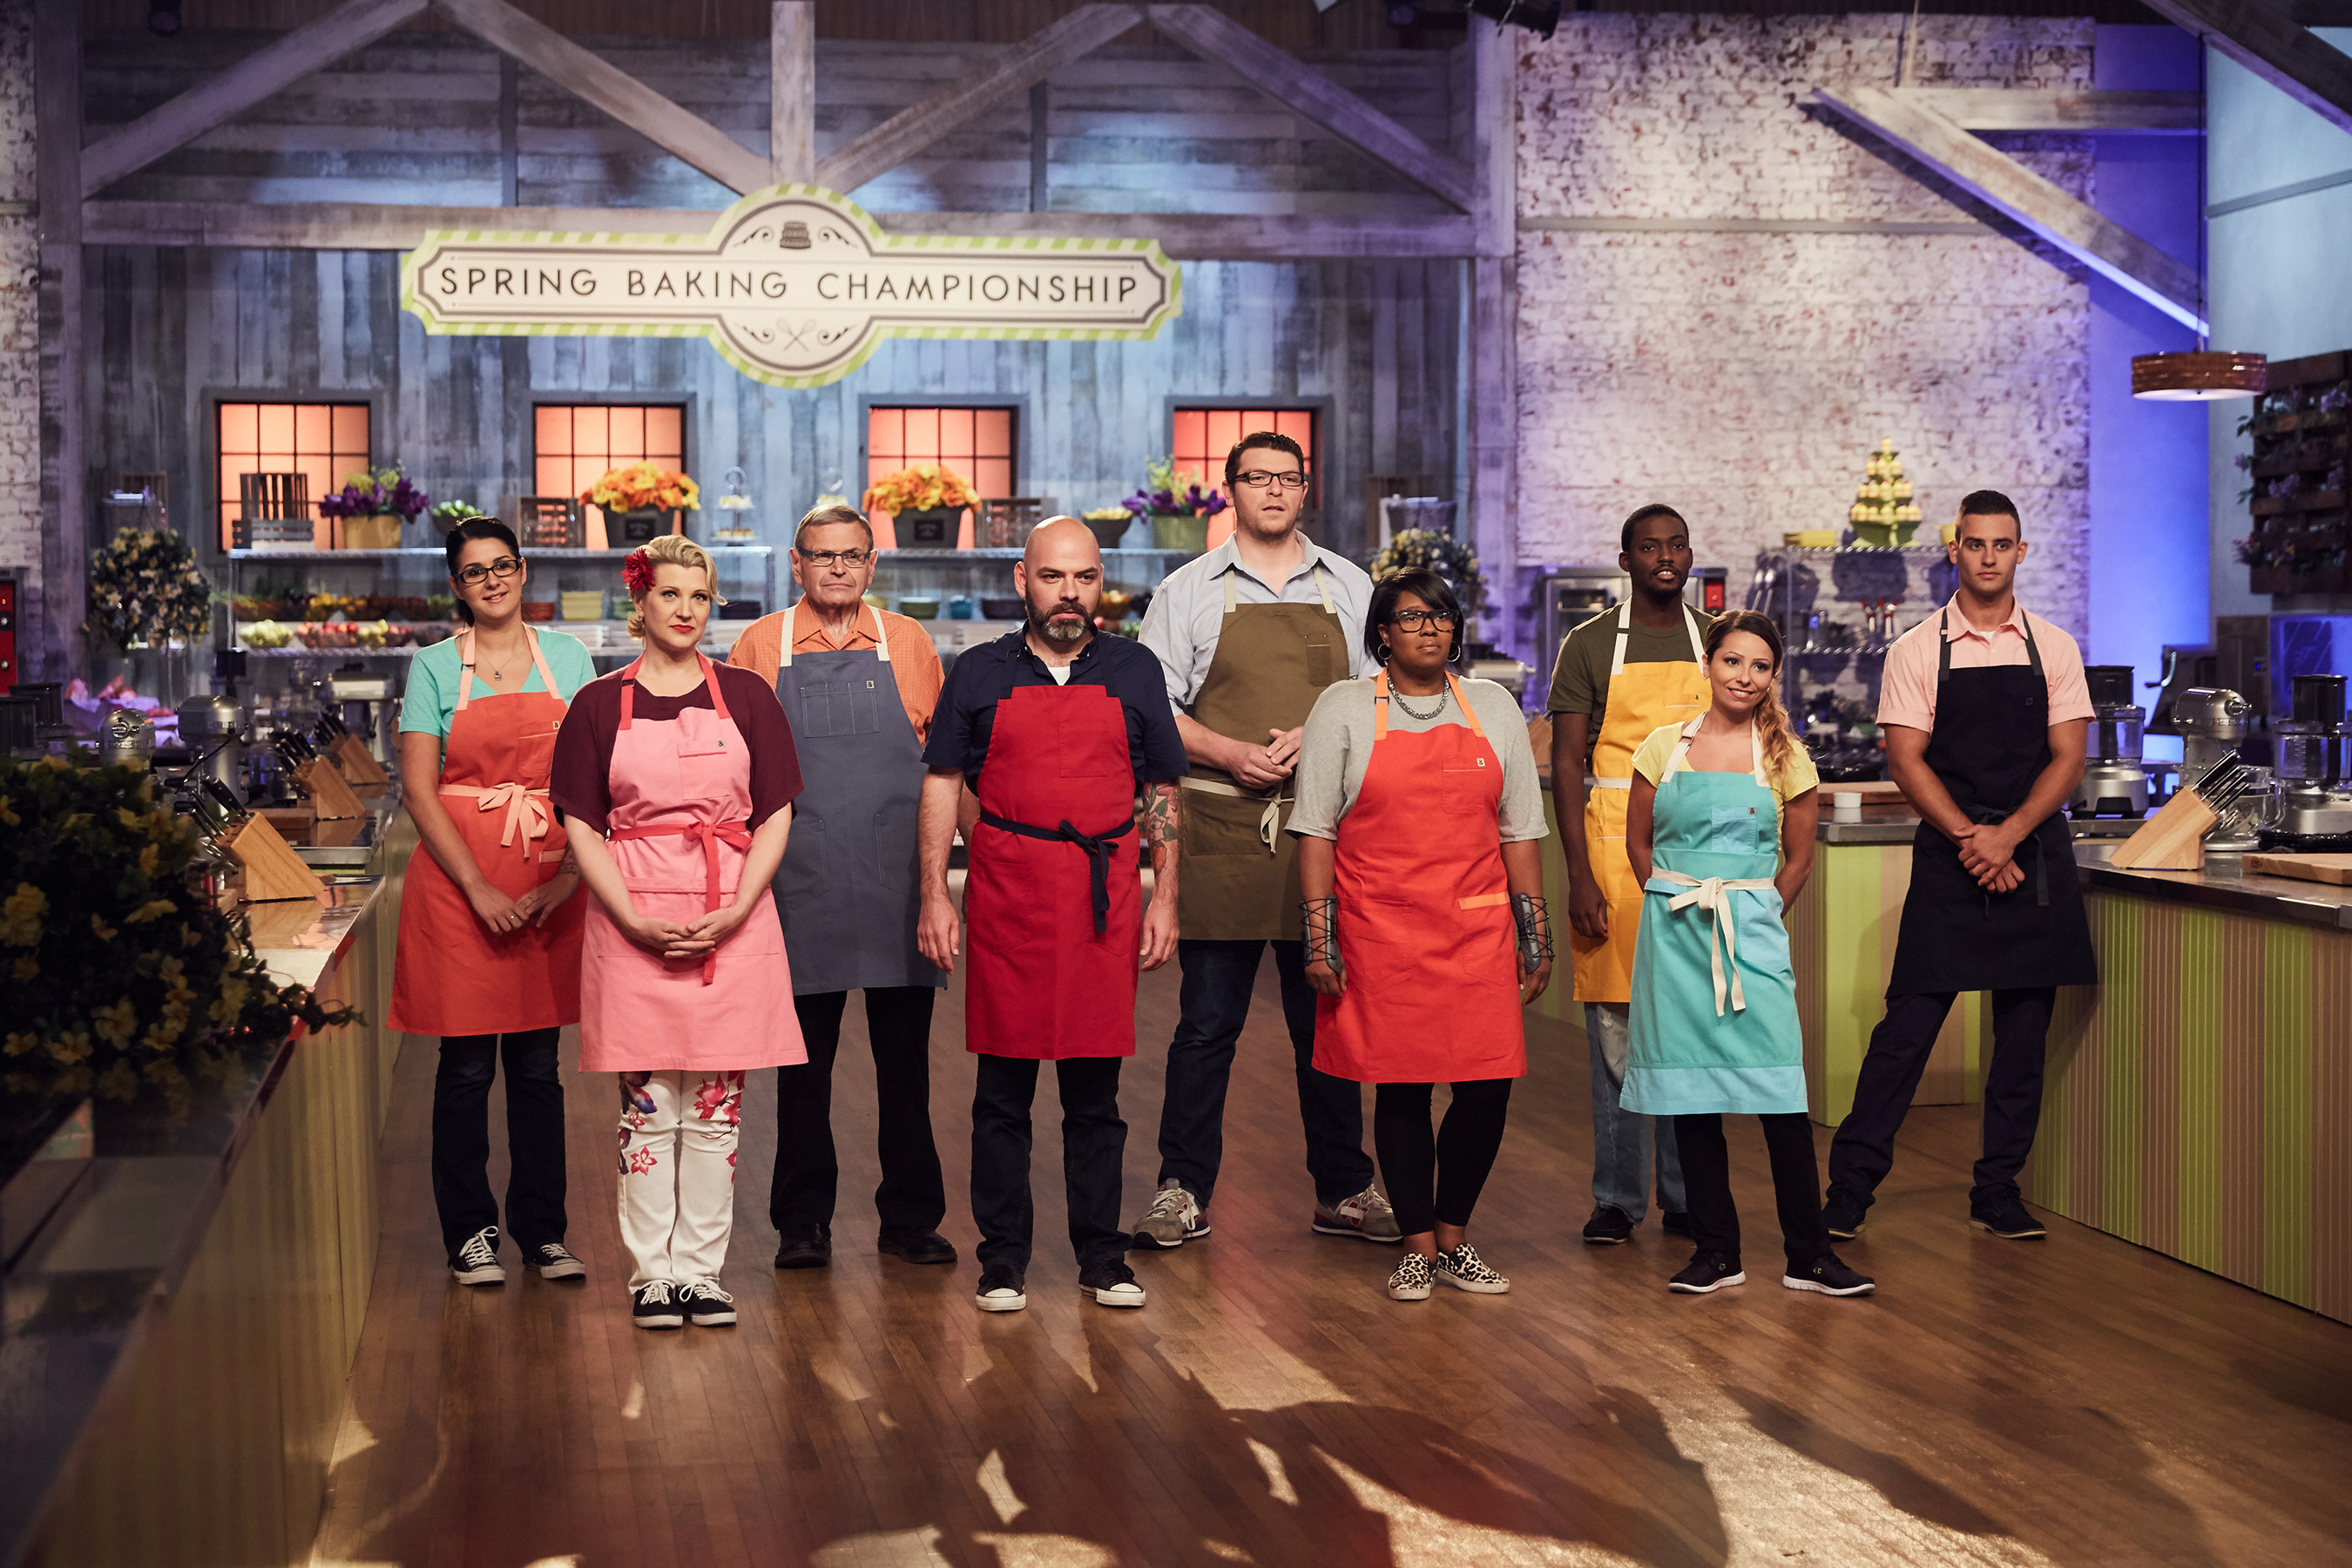 The competitors of Food Network's Spring Baking Championship